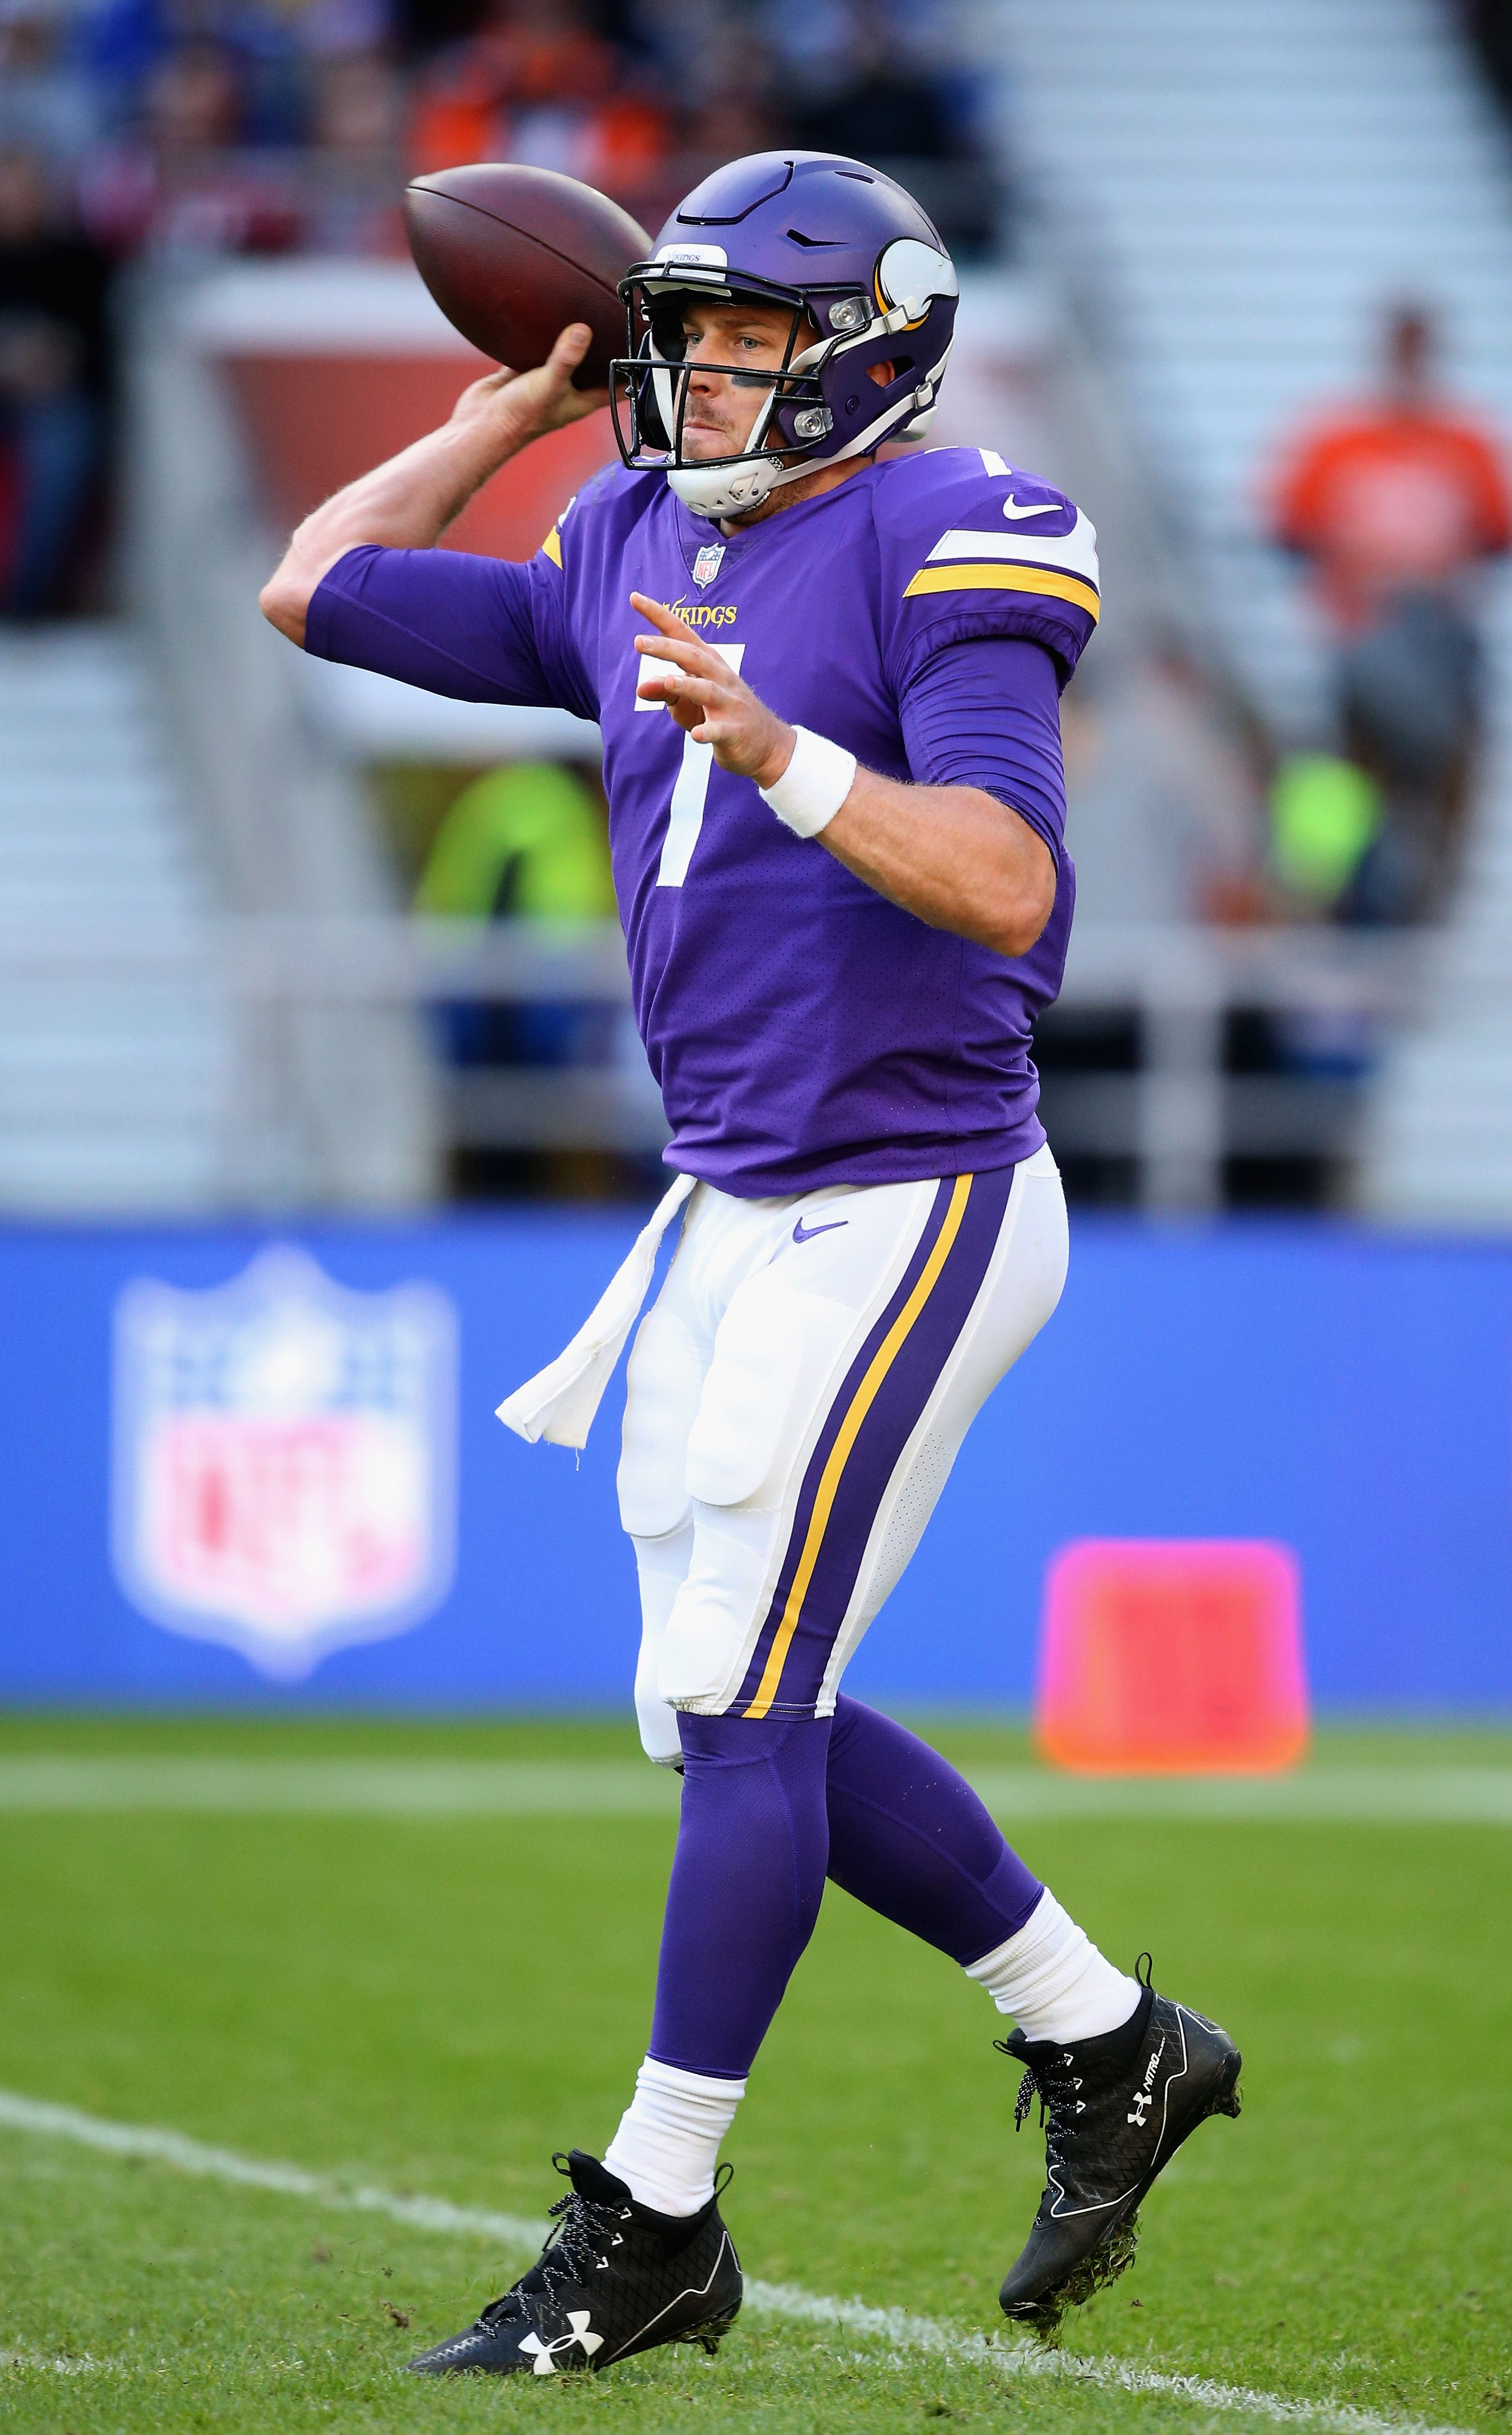 Minnesota Vikings vs. Cleveland Browns: Schmidt's Week 8 game ...